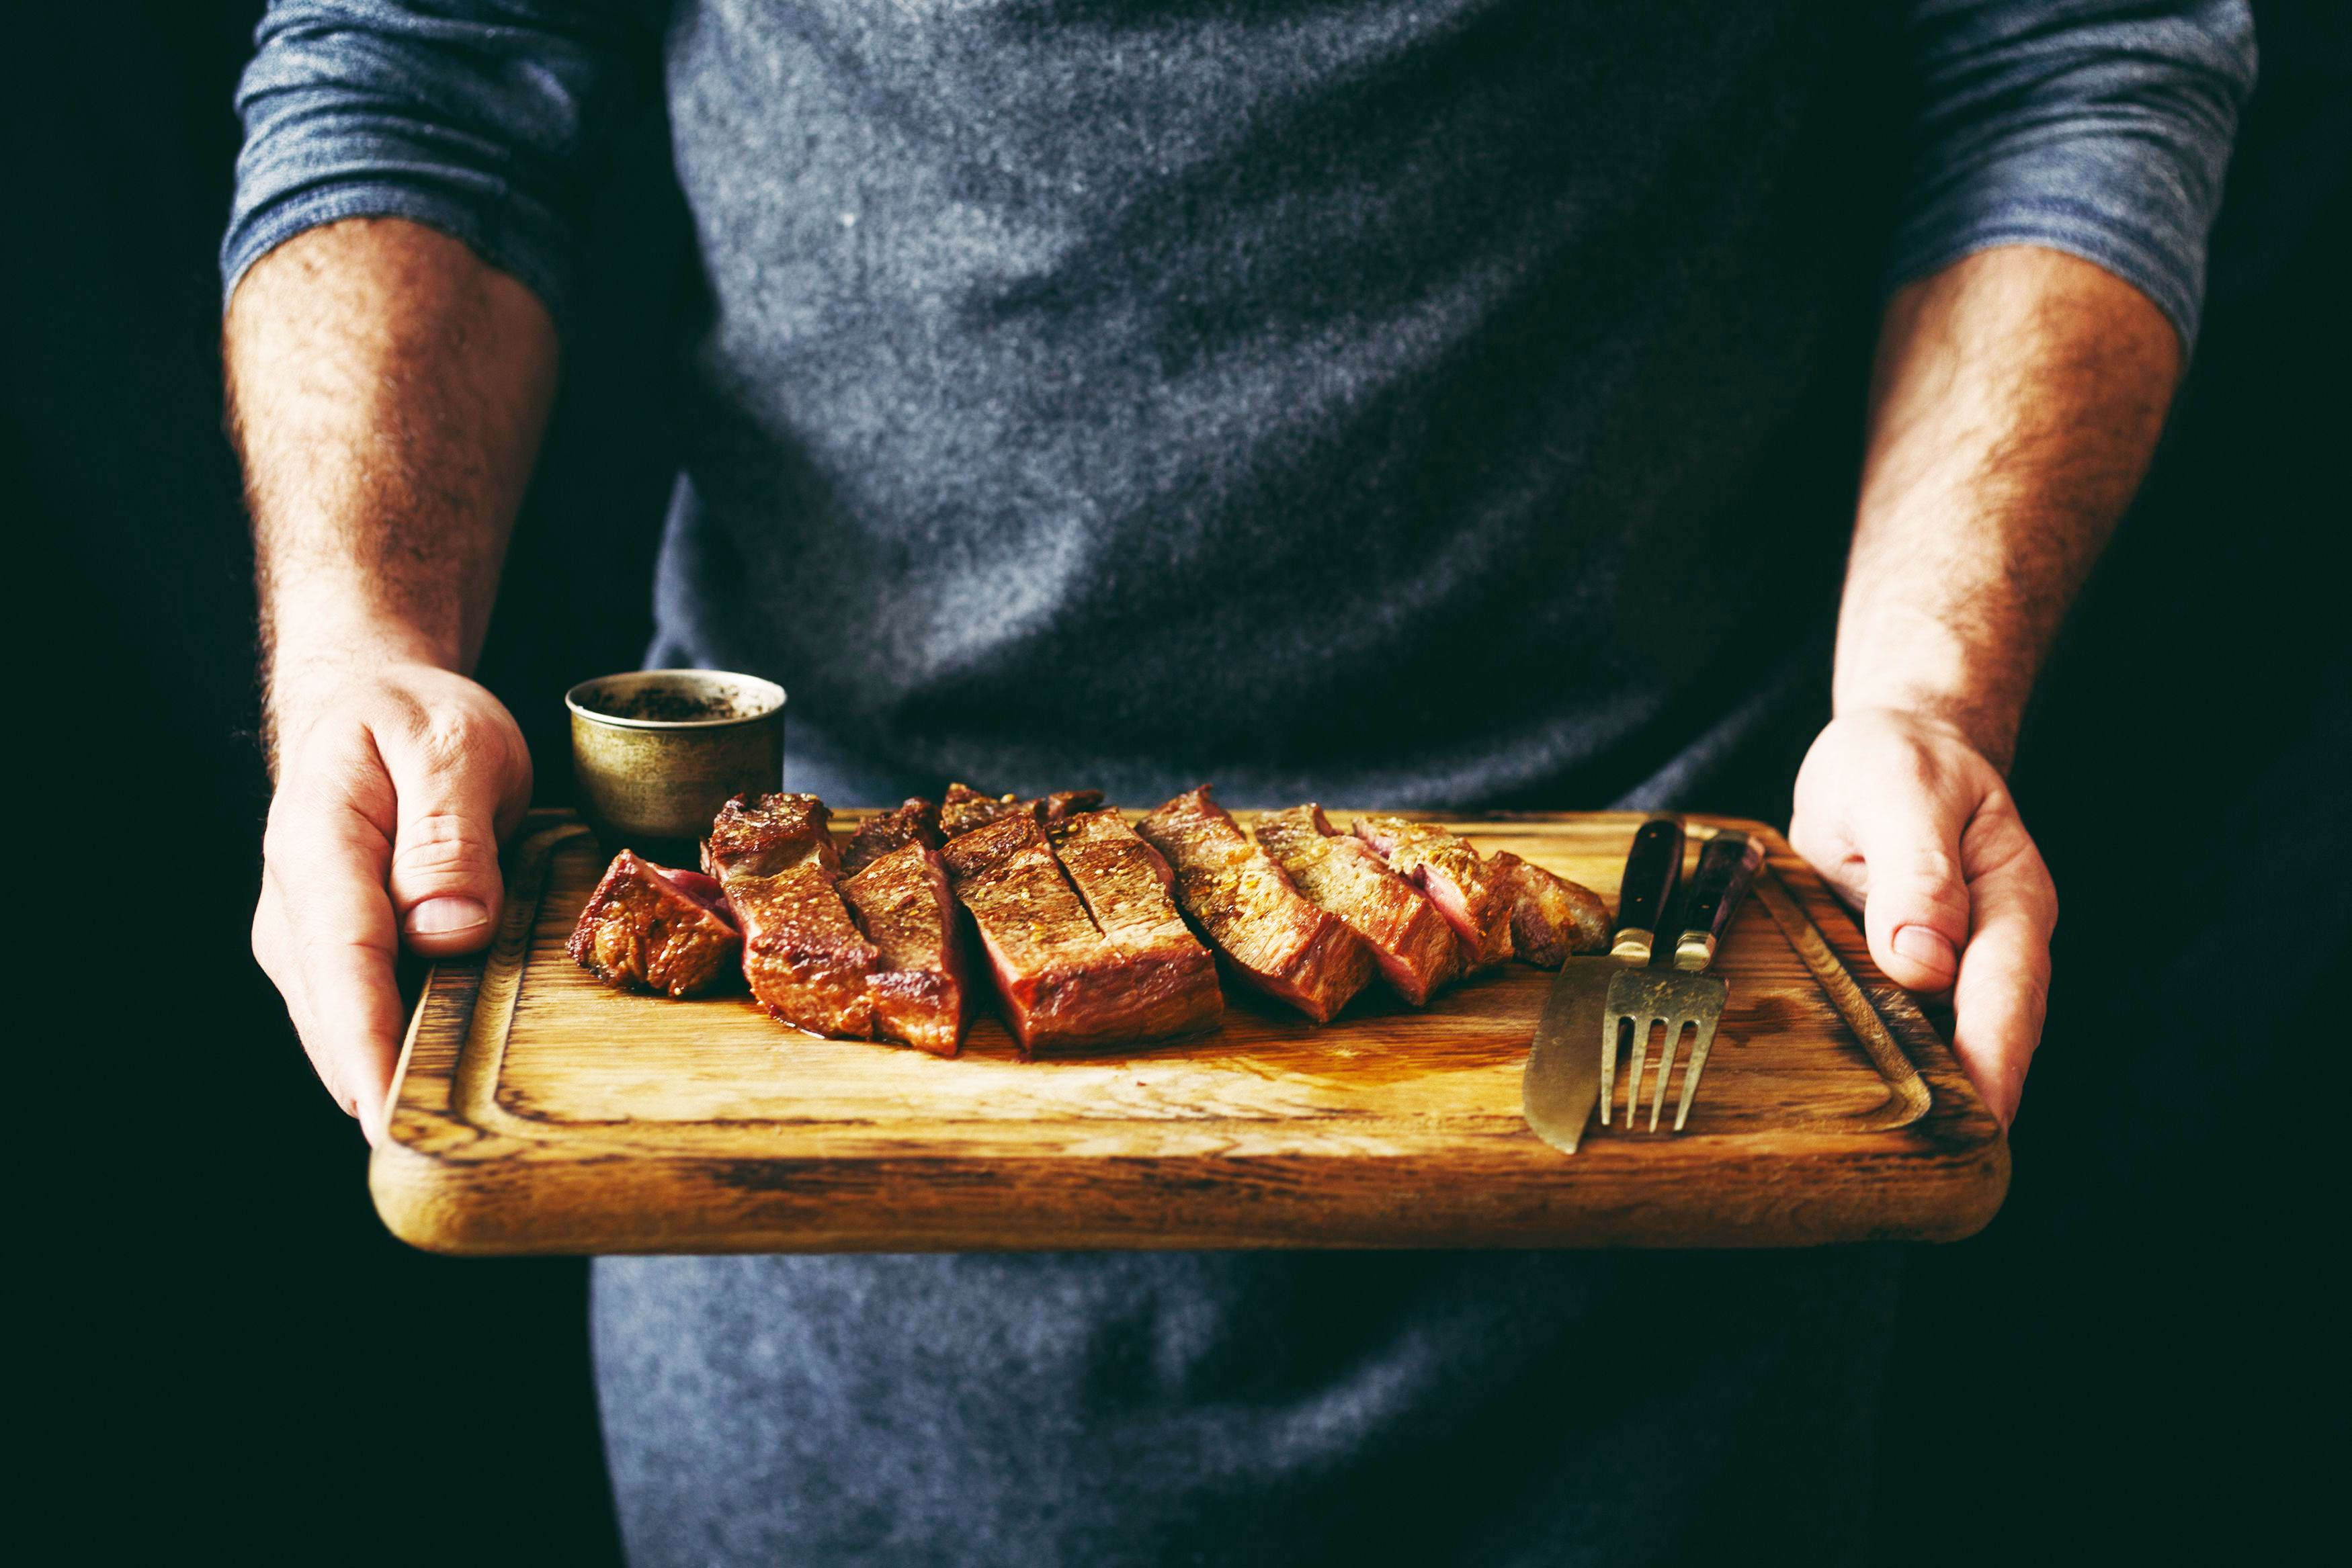 There's Only One Right Way to Cook a Steak